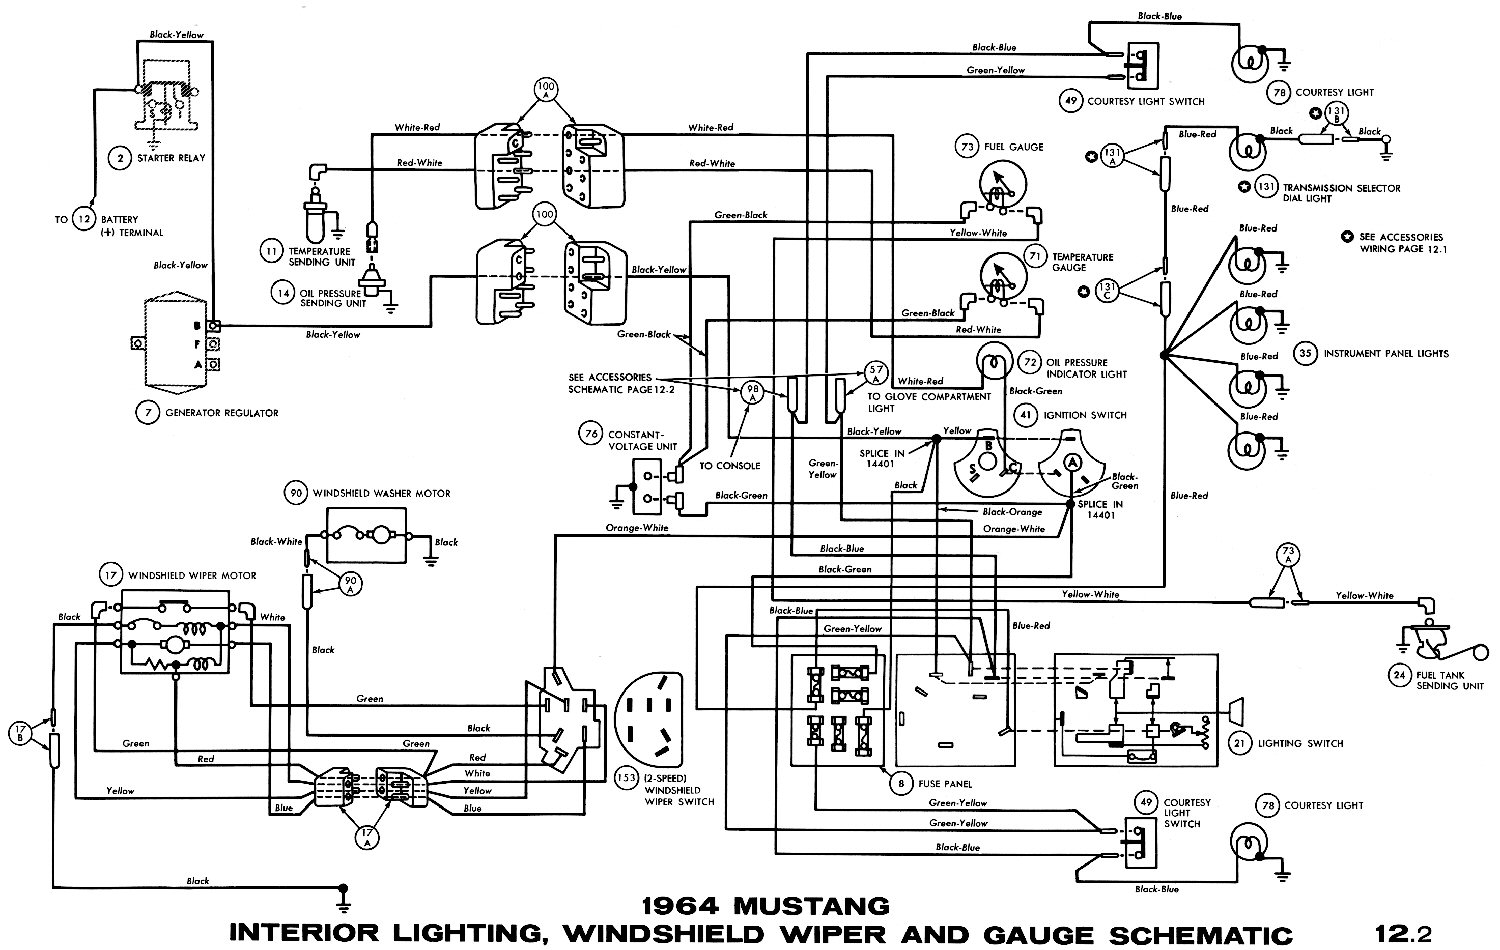 1964 mustang wiring diagrams average joe restoration rh averagejoerestoration com Ford Radio Pinout Ford Car Radio Wire Diagrams